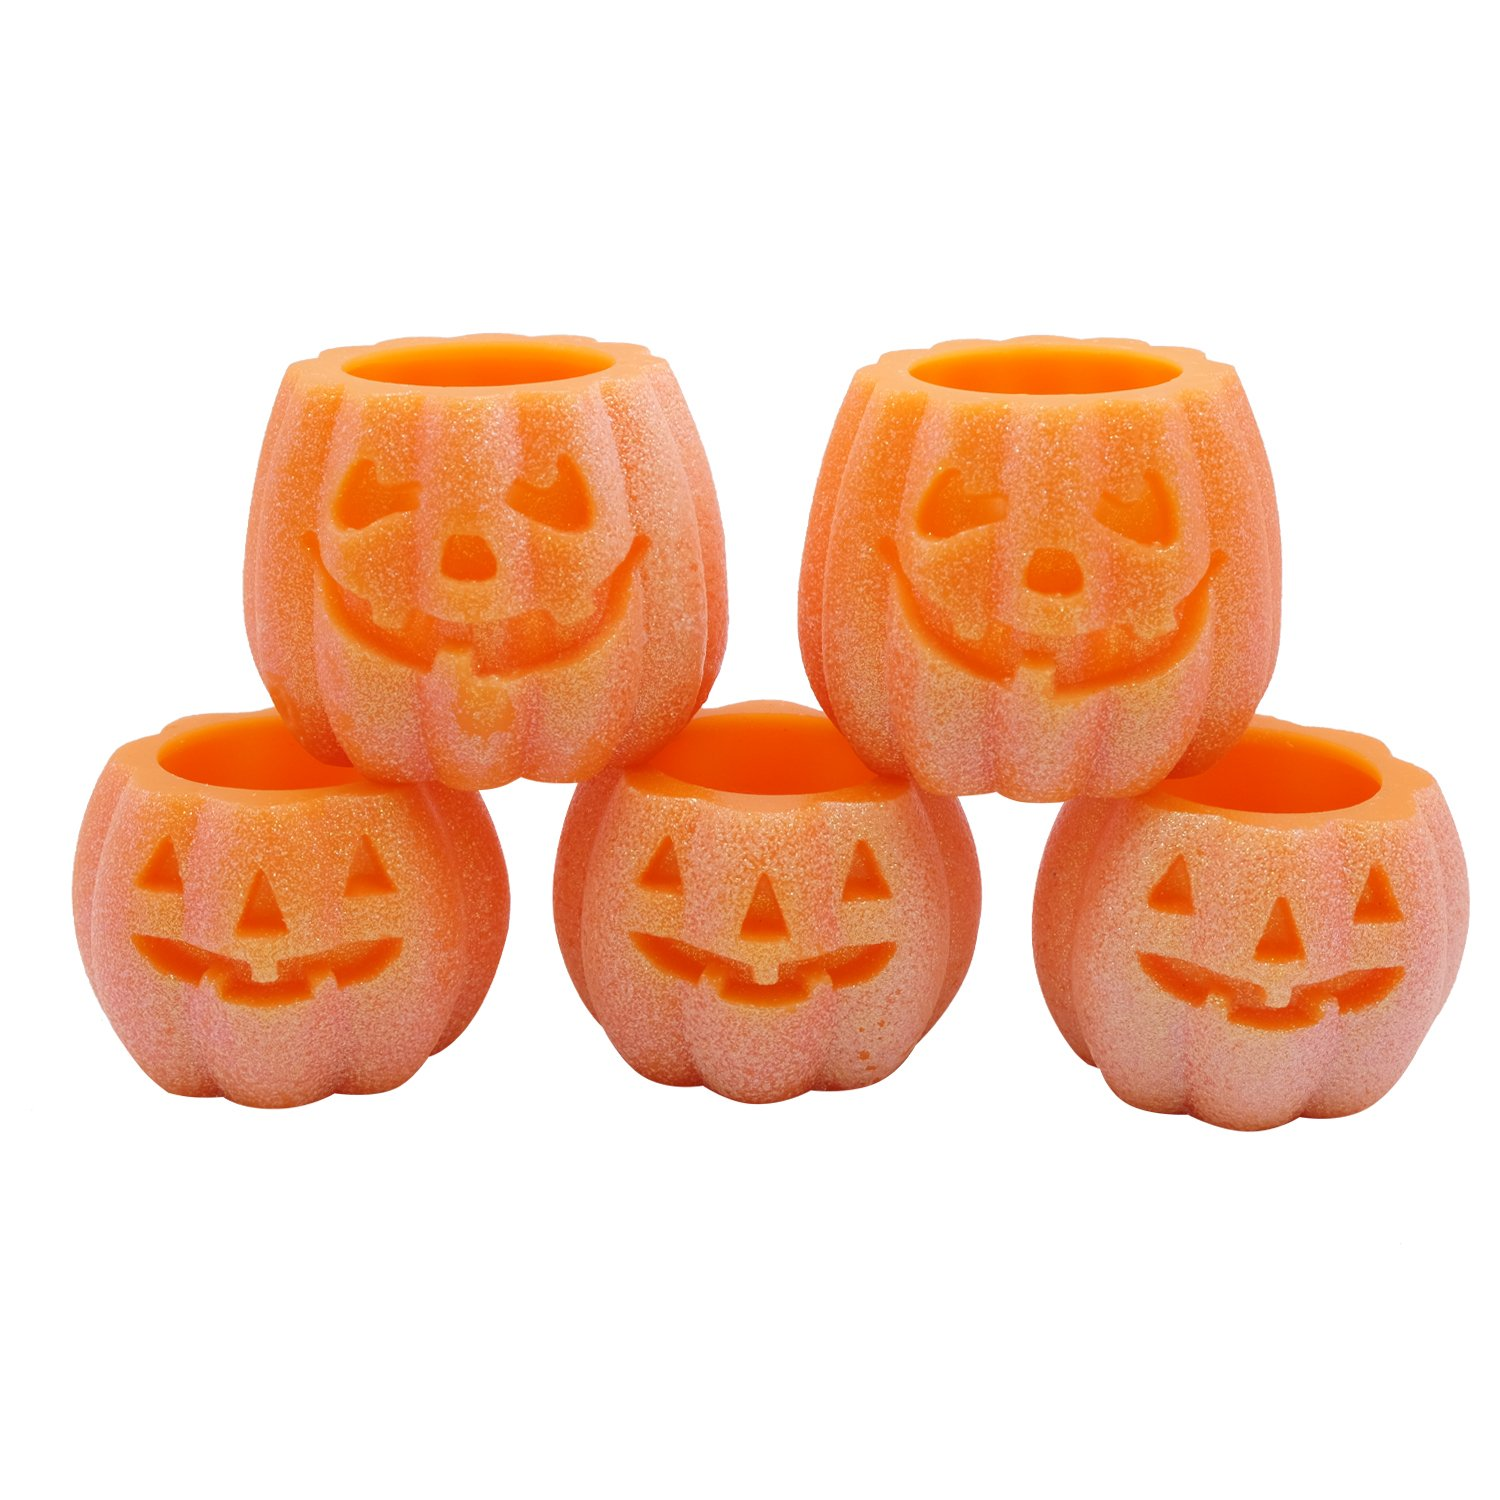 DRomance Flameless Pumpkin LED Candles with 6H Timer Battery Operated Real Wax Candles for Halloween Decoration